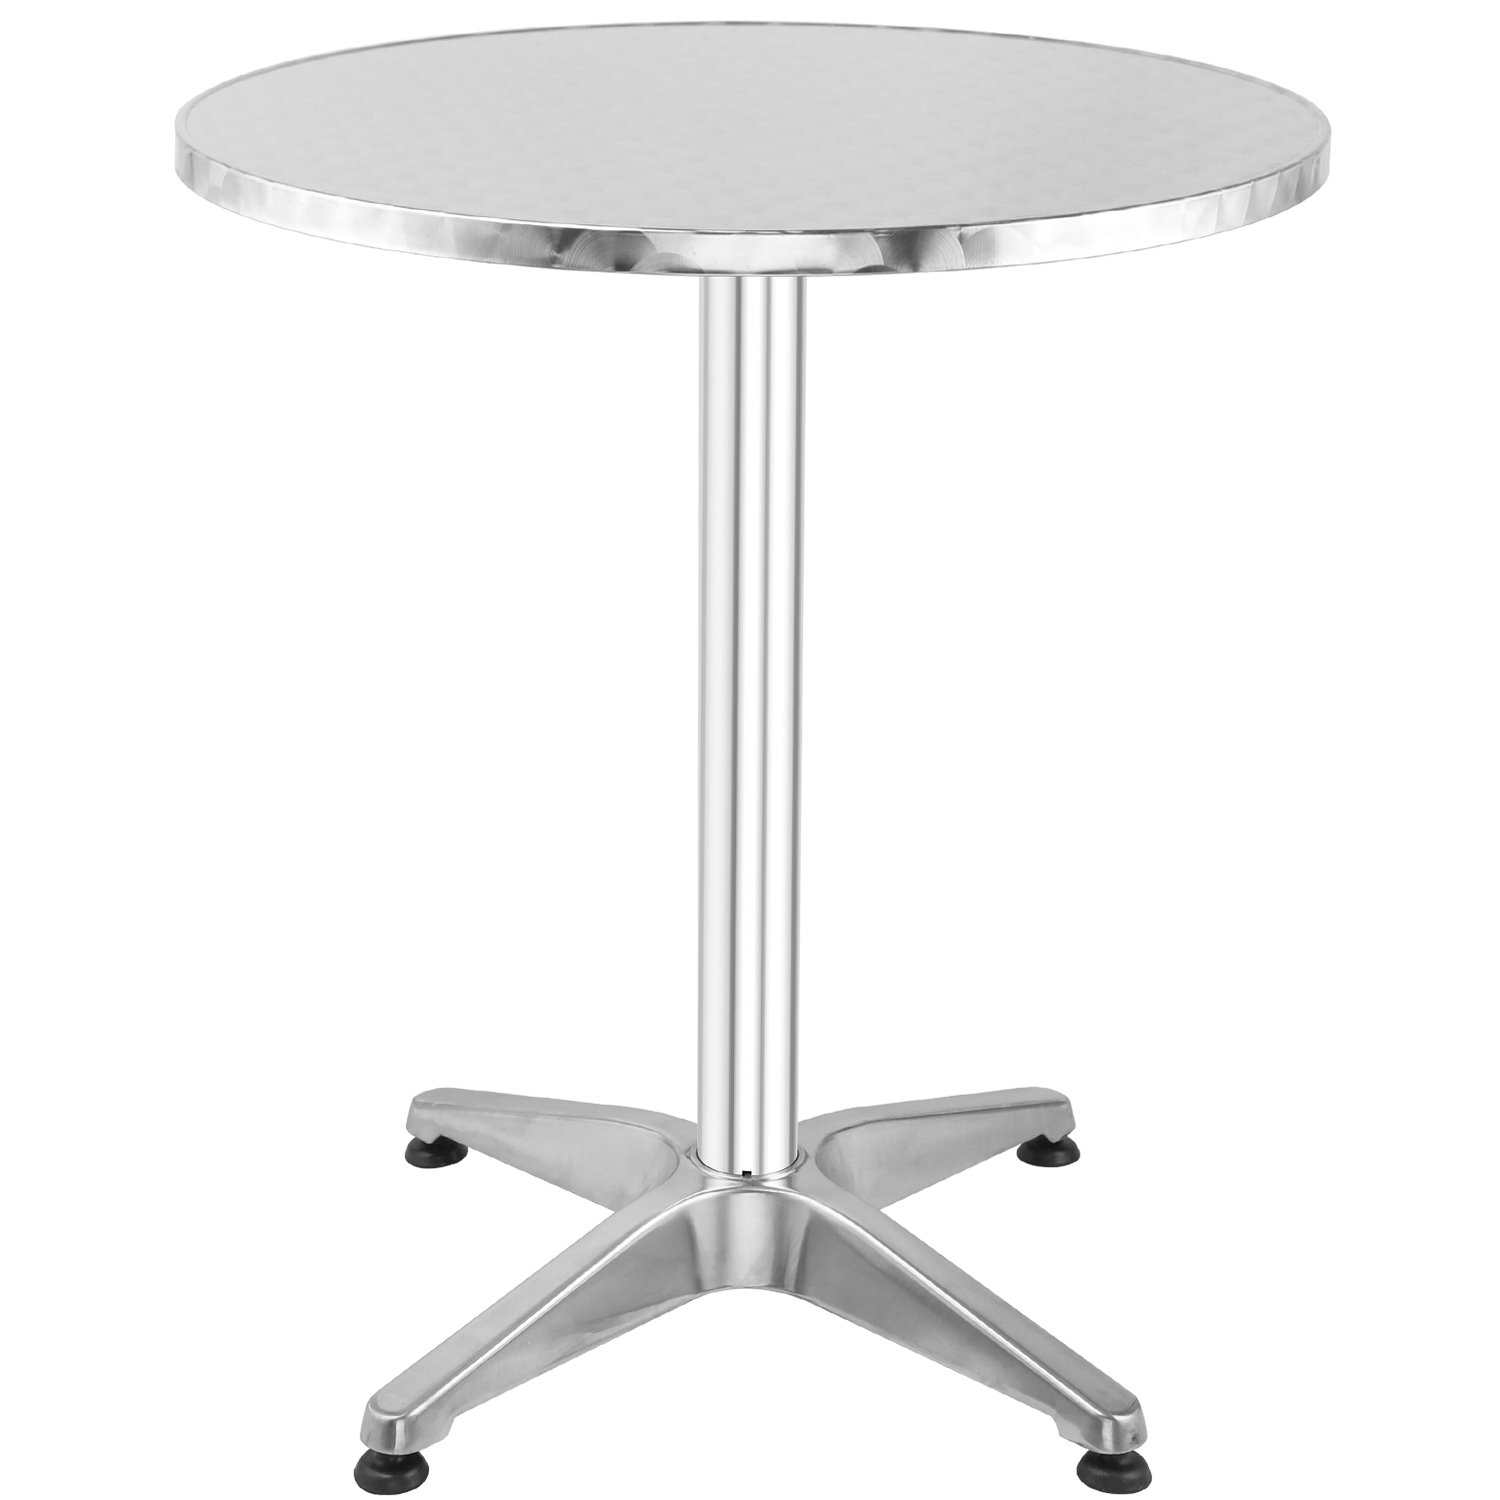 Hromee Bistro Bar Table 23.5'' Aluminum Round Tabletop for Indoor Outdoor, Silver